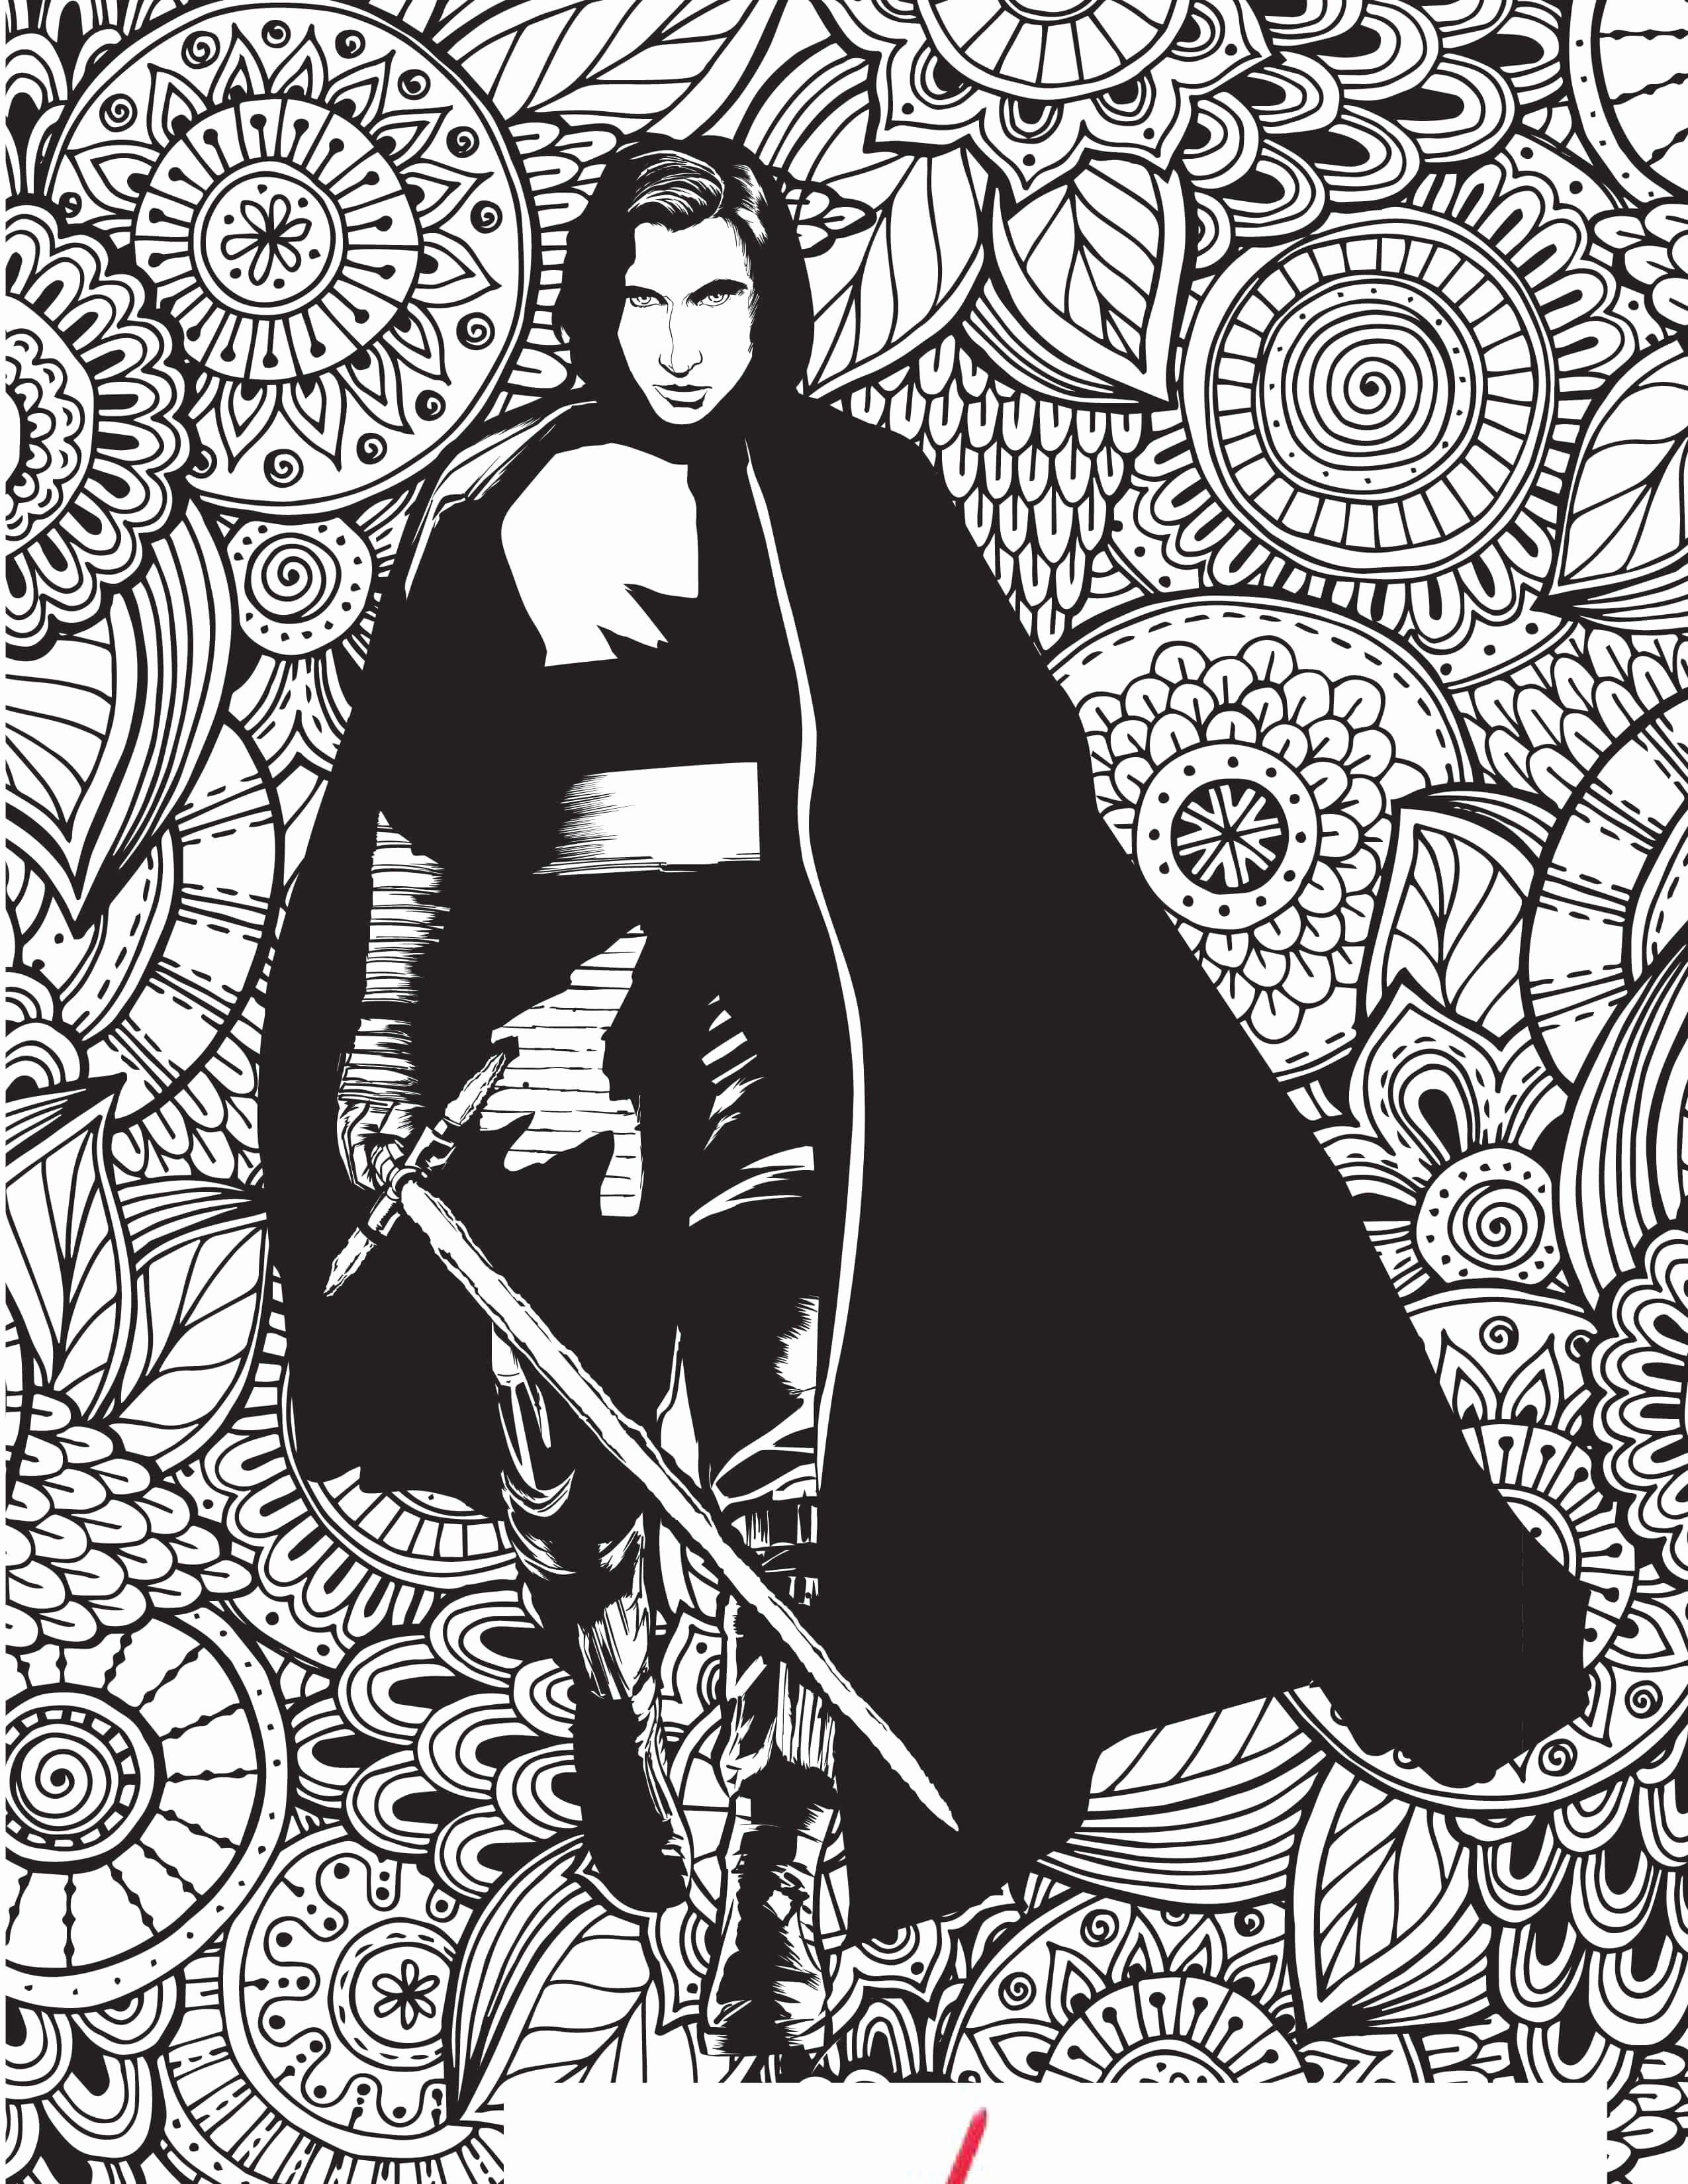 Kylo Ren Coloring Page Inspirational Free Star Wars Coloring Pages In 2020 Star Wars Printables Coloring Pages Star Wars Printables Free